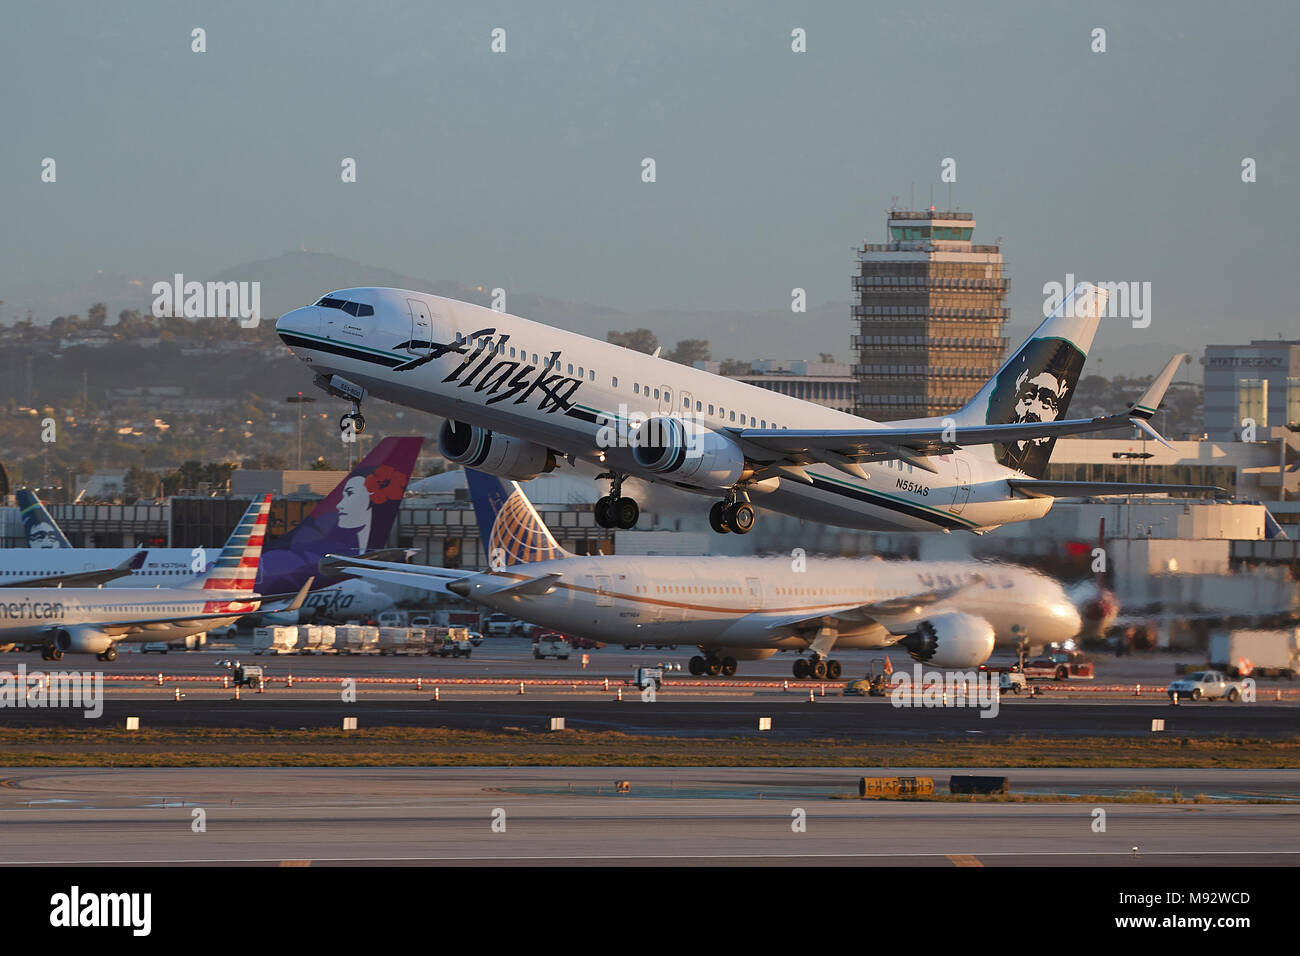 Alaska airlines stock photos alaska airlines stock images alamy alaska airlines boeing 737 800 taking off from los angeles international airport lax buycottarizona Choice Image